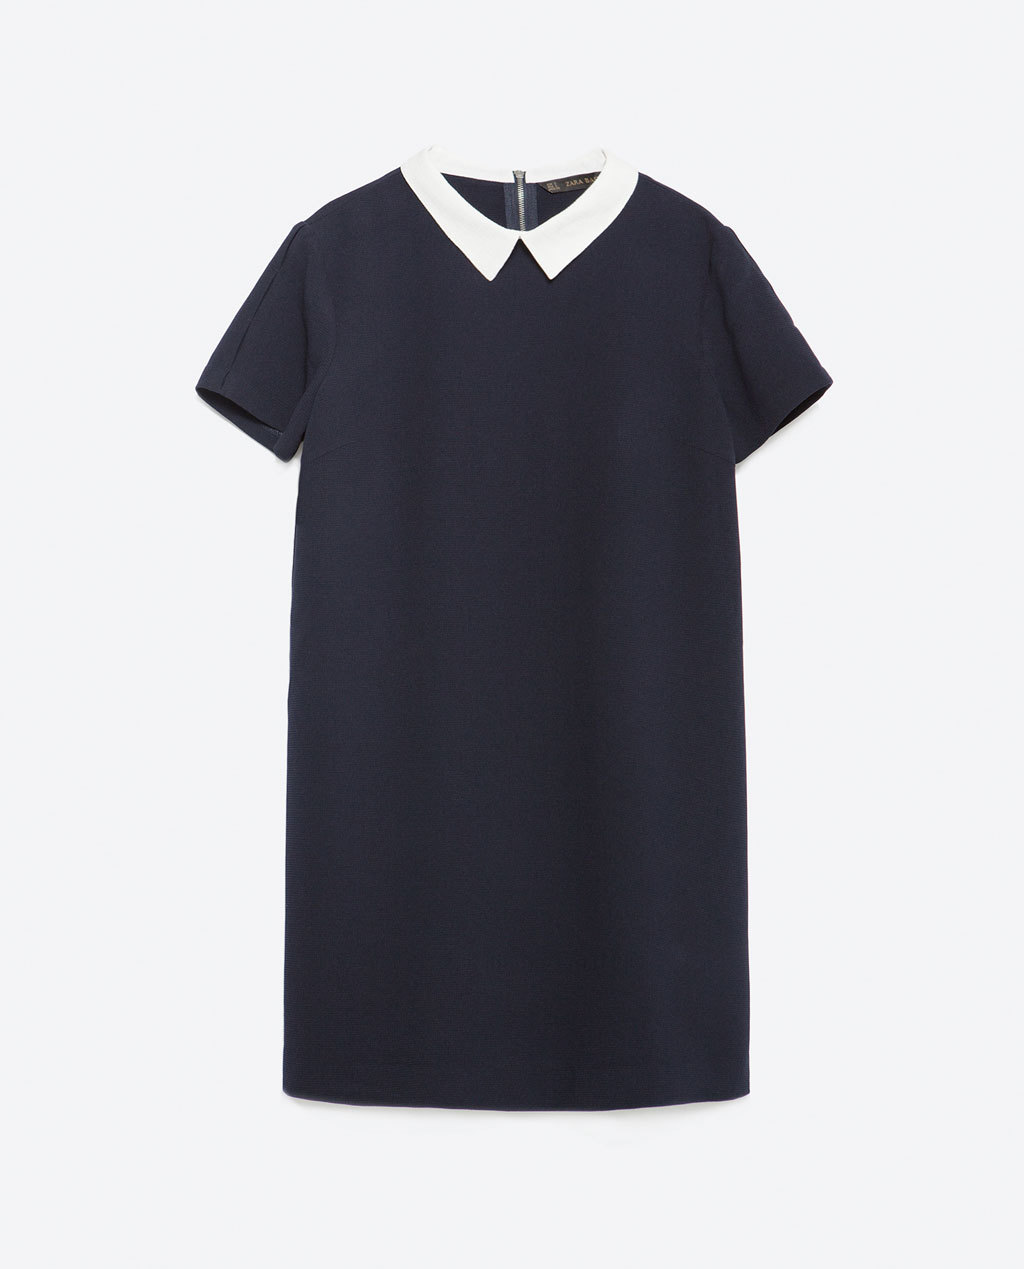 Dress With Contrasting Collar - style: shift; length: mid thigh; pattern: plain; predominant colour: navy; occasions: casual, work; fit: straight cut; fibres: polyester/polyamide - 100%; neckline: no opening/shirt collar/peter pan; sleeve length: short sleeve; sleeve style: standard; pattern type: fabric; texture group: other - light to midweight; season: a/w 2015; wardrobe: basic